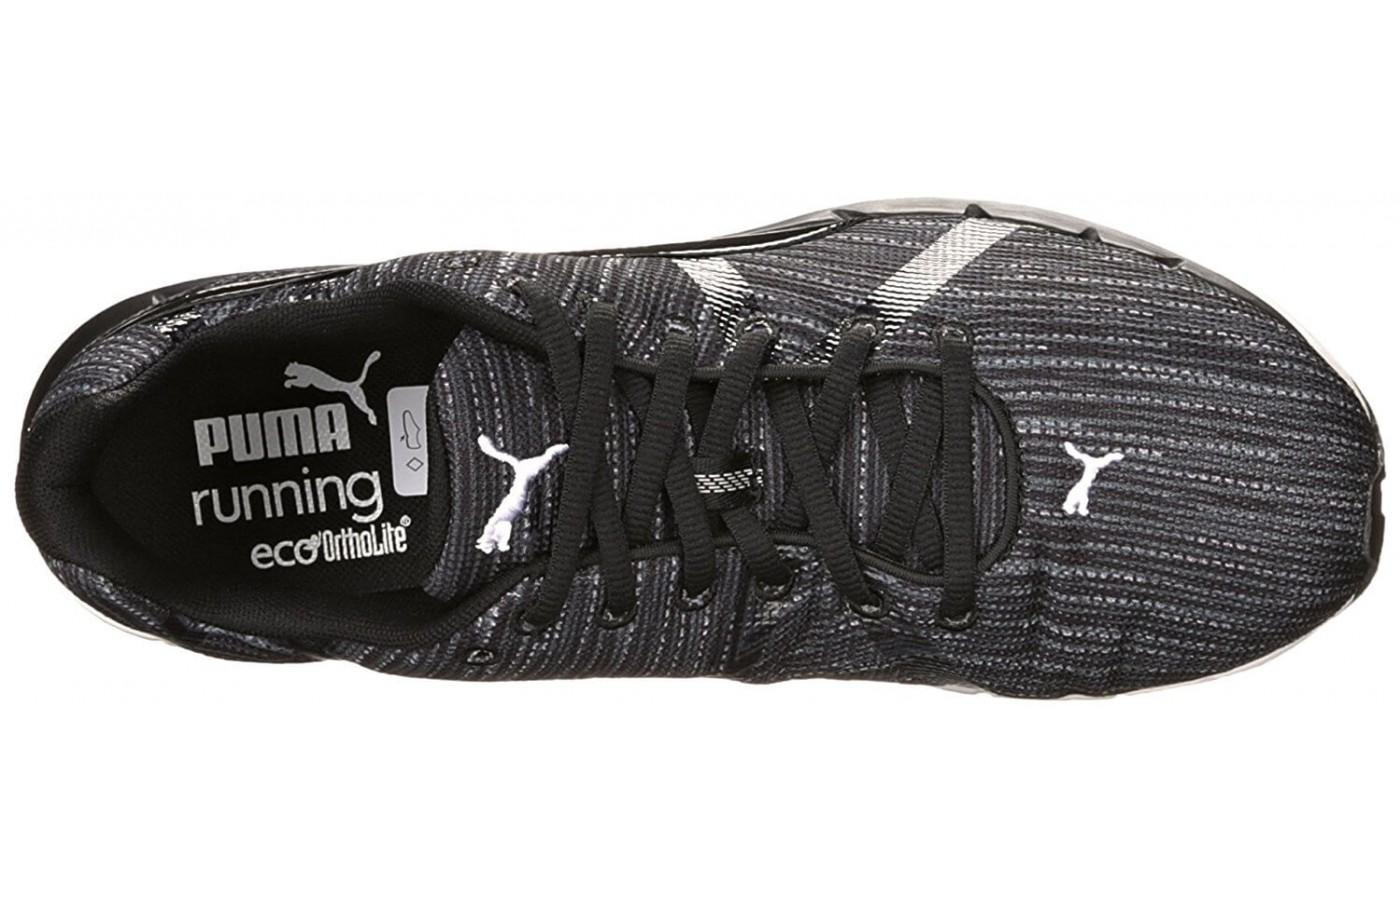 Puma Bravery has a breathable upper